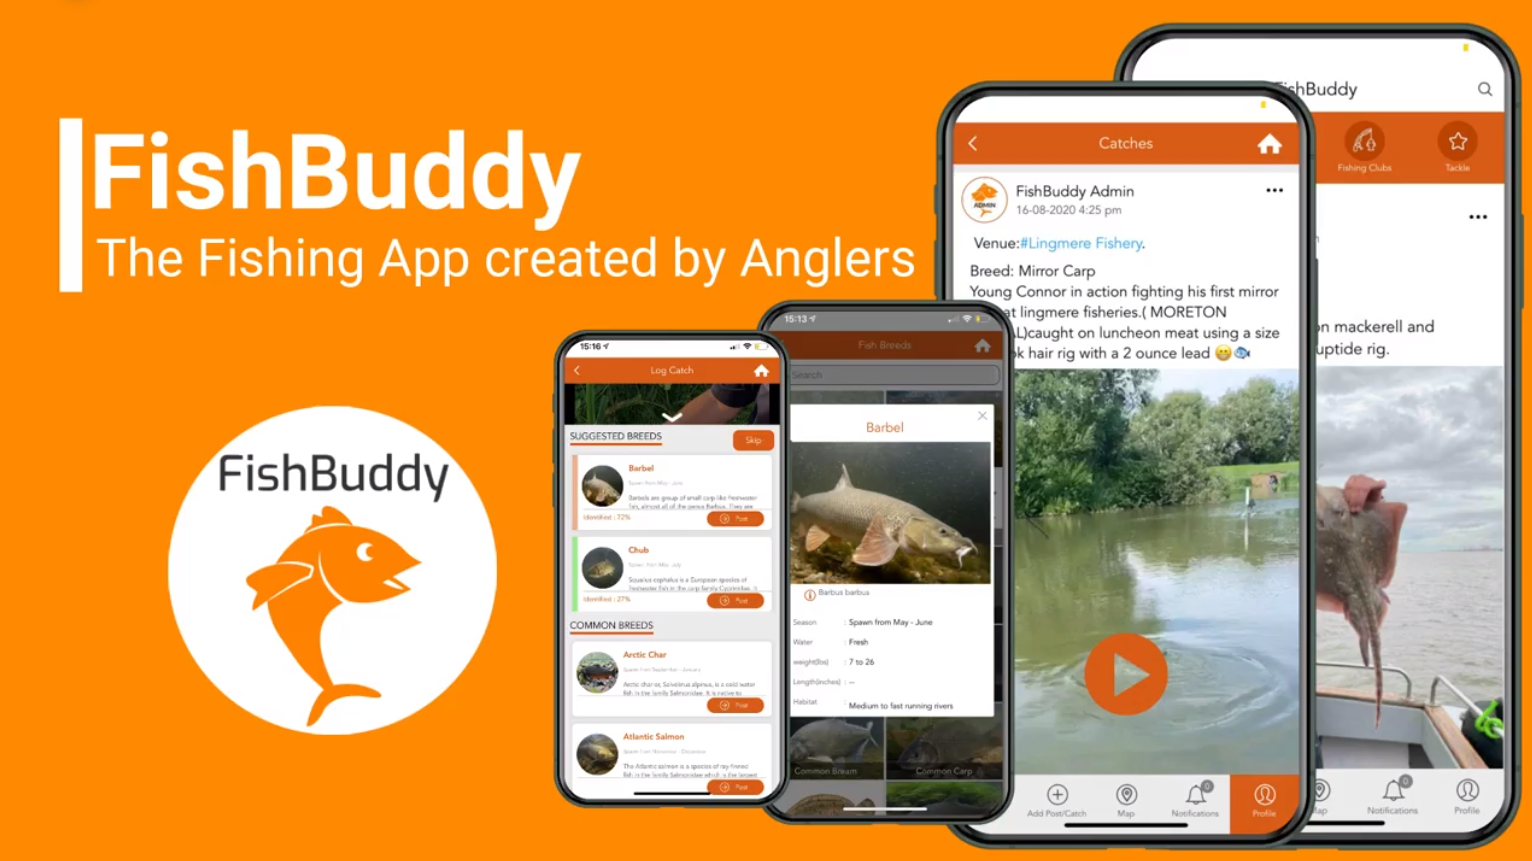 8 REASONS WHY YOU SHOULD DOWNLOAD THE FISHBUDDY APP TODAY